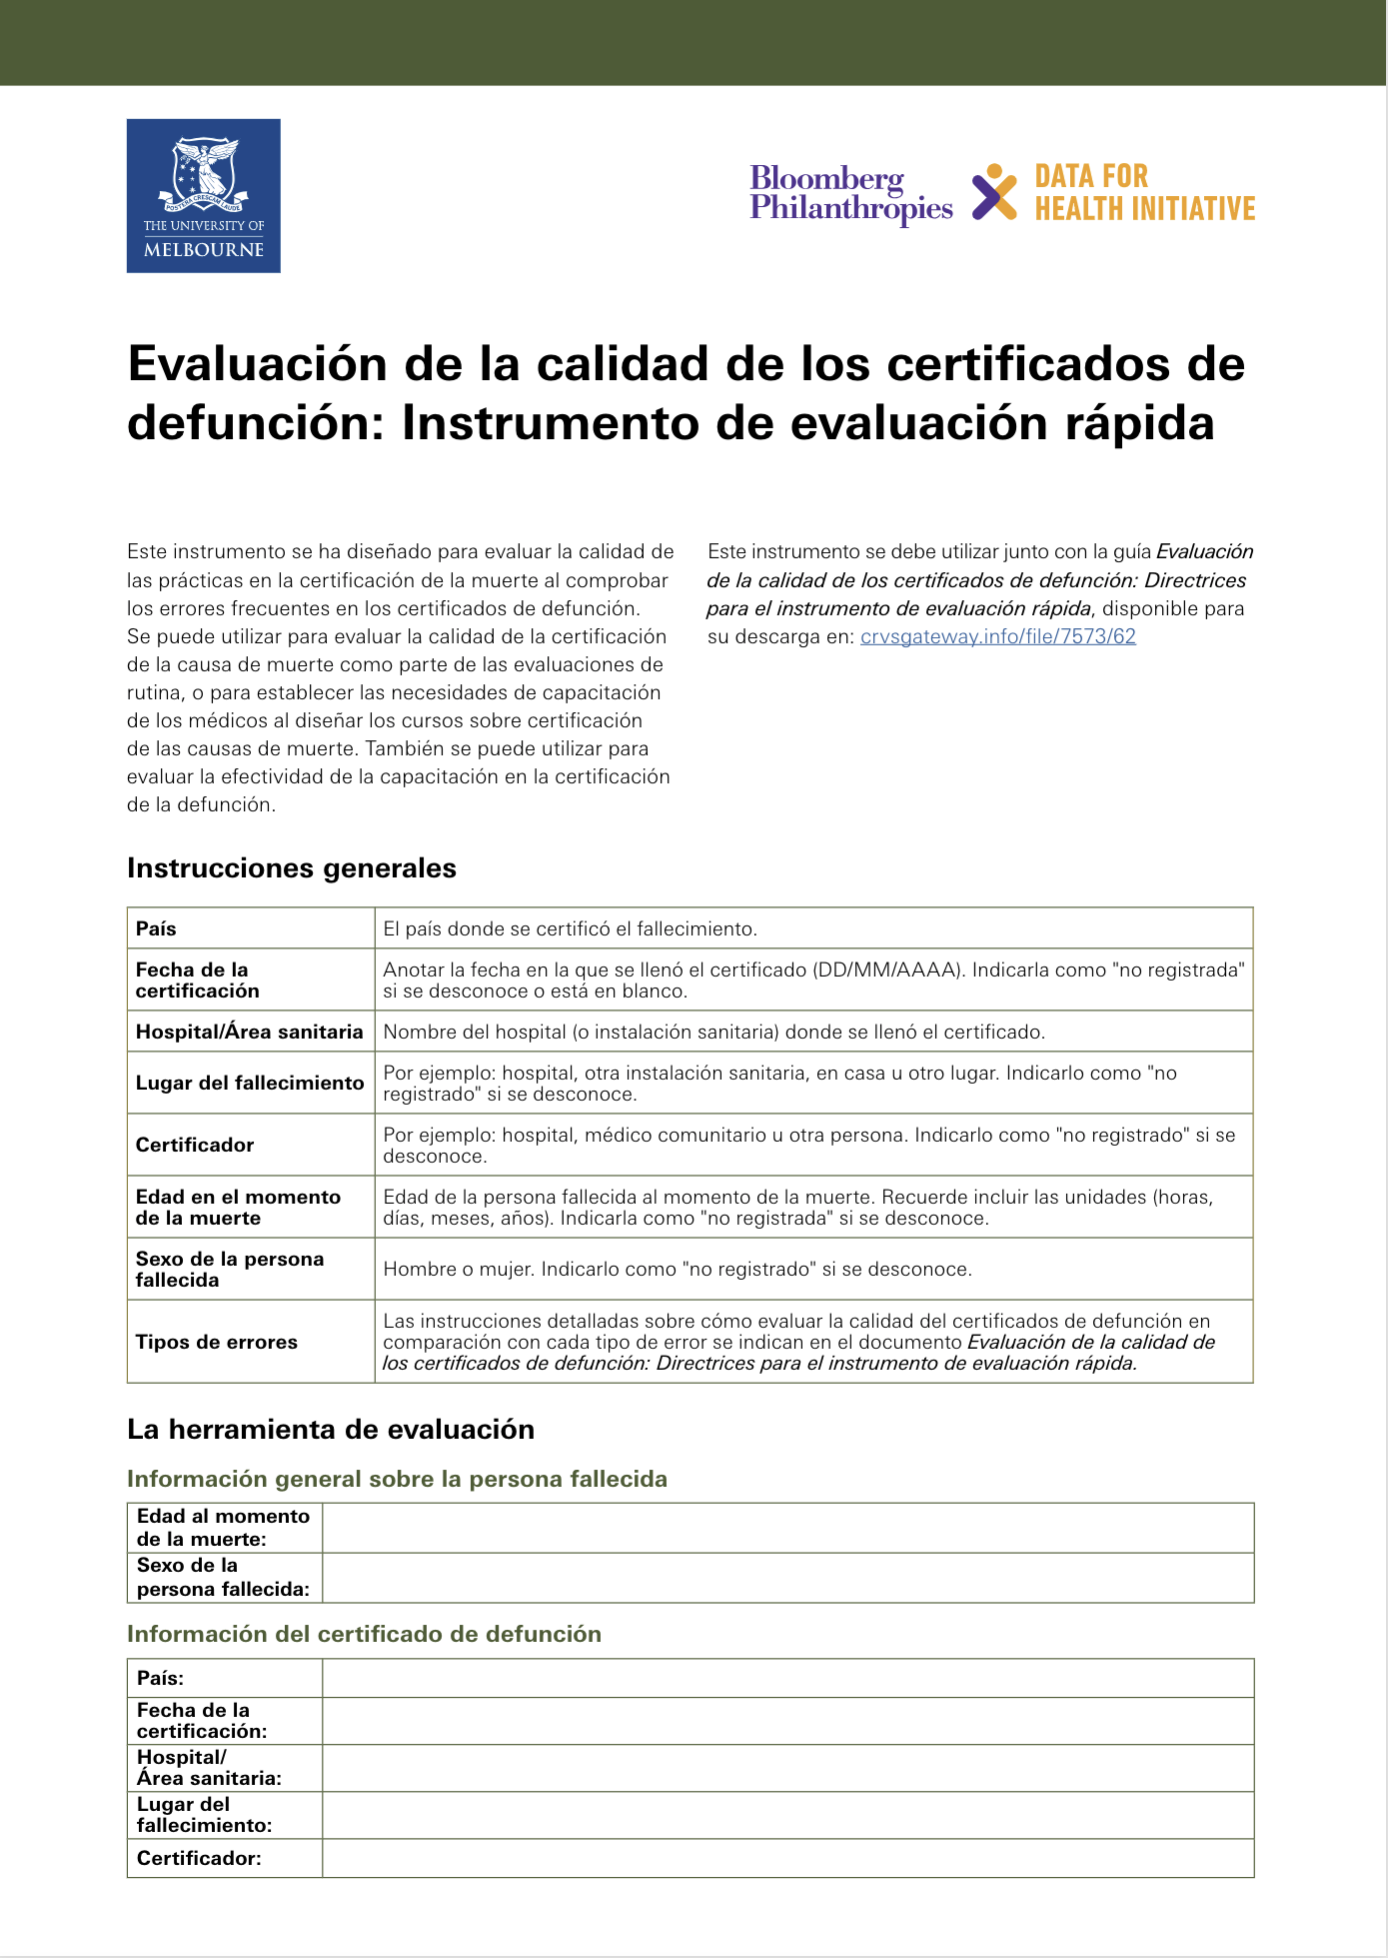 Assessing the quality of death certificates: Rapid tool - Spanish version (Evaluación de la calidad de los certificados de defunción: Instrumento de evaluación rápida) thumbnail